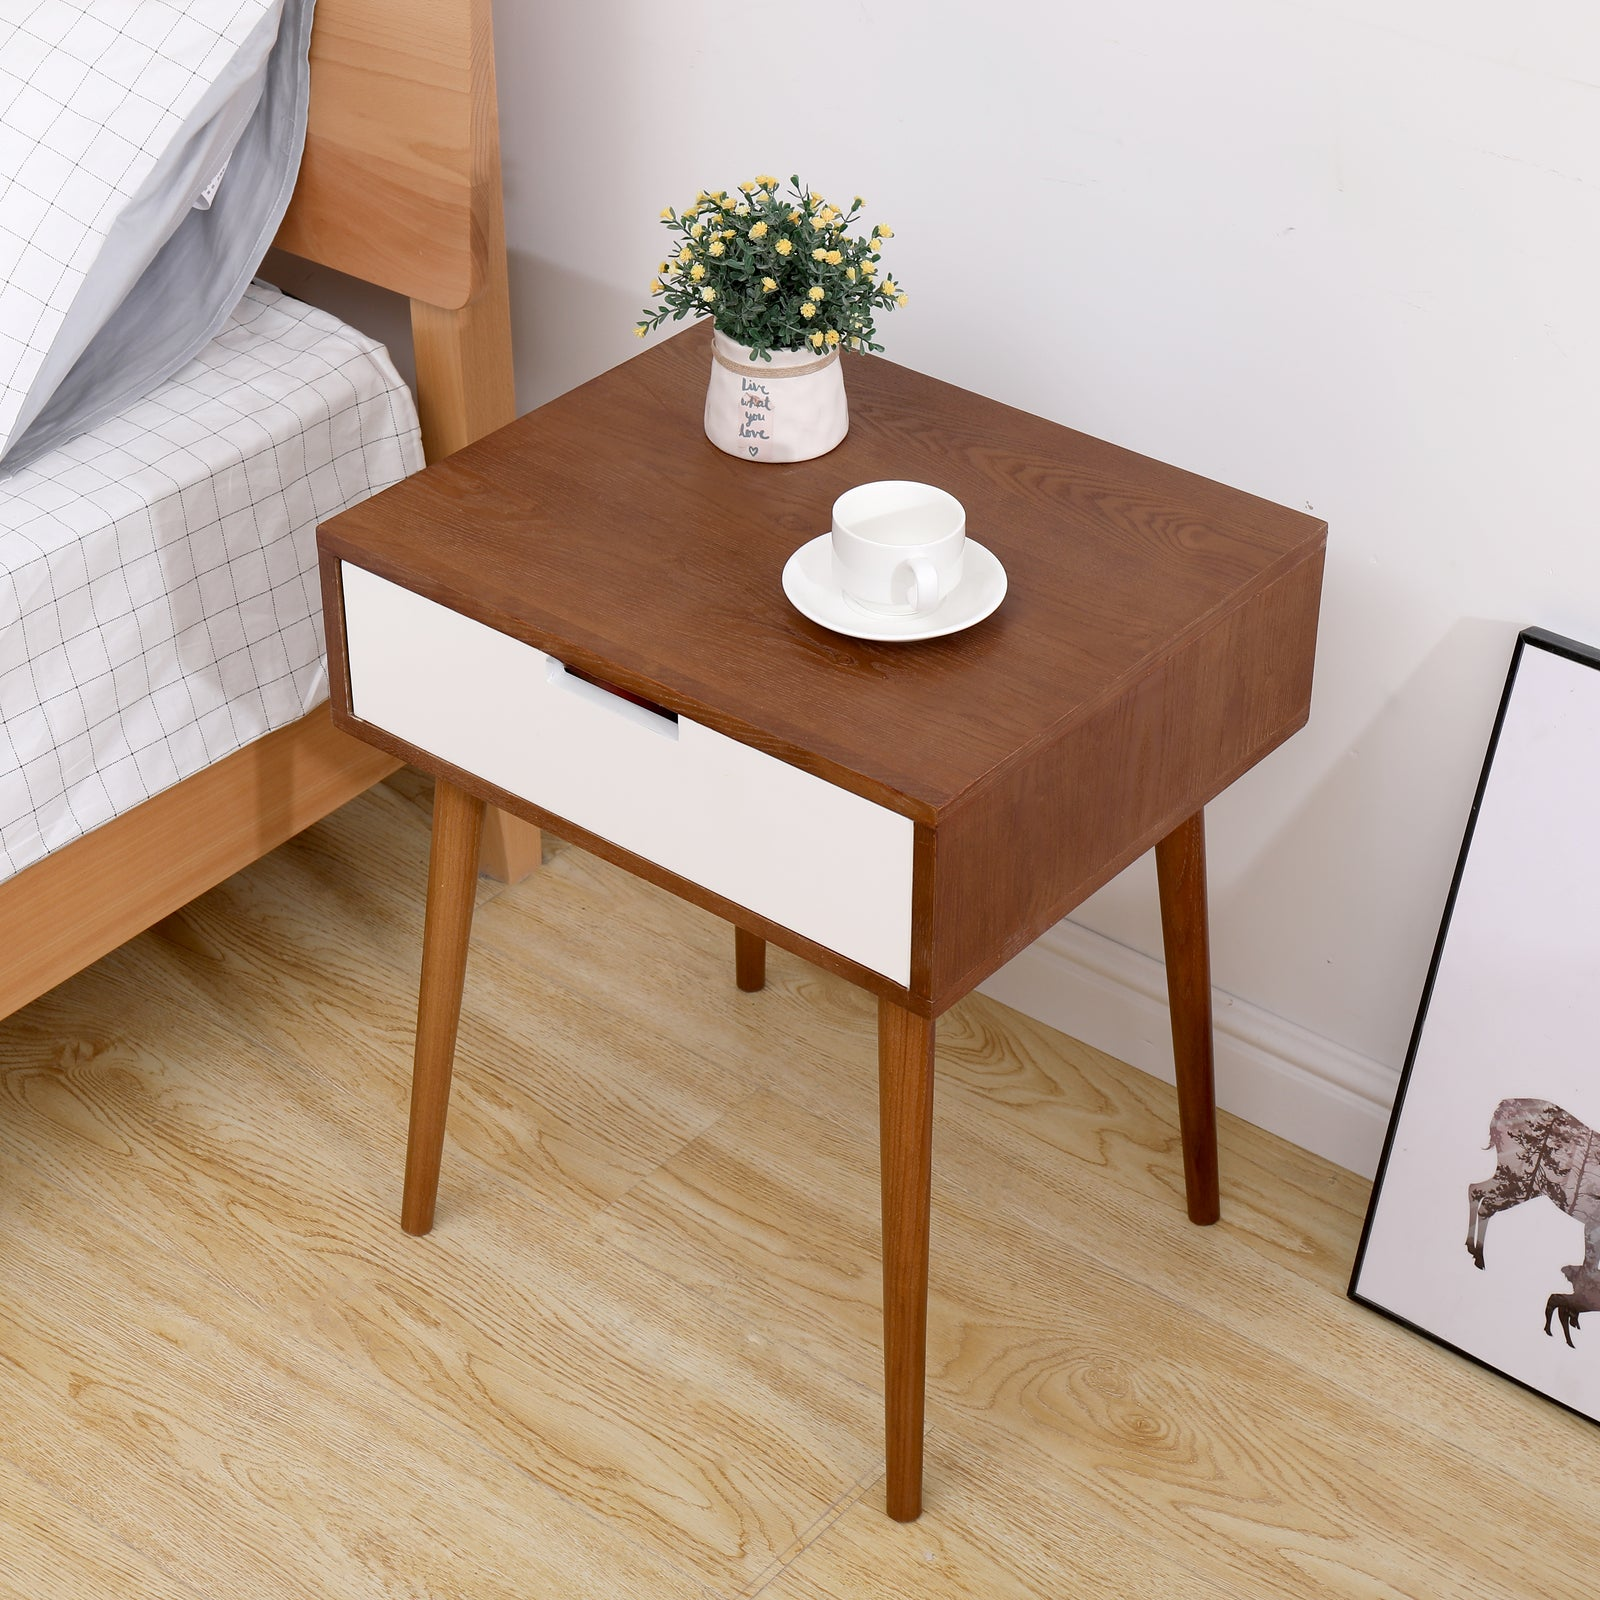 Sienna Light Fraxinus mandshurica/White Side End Table Nightstand with Drawer BH30005854